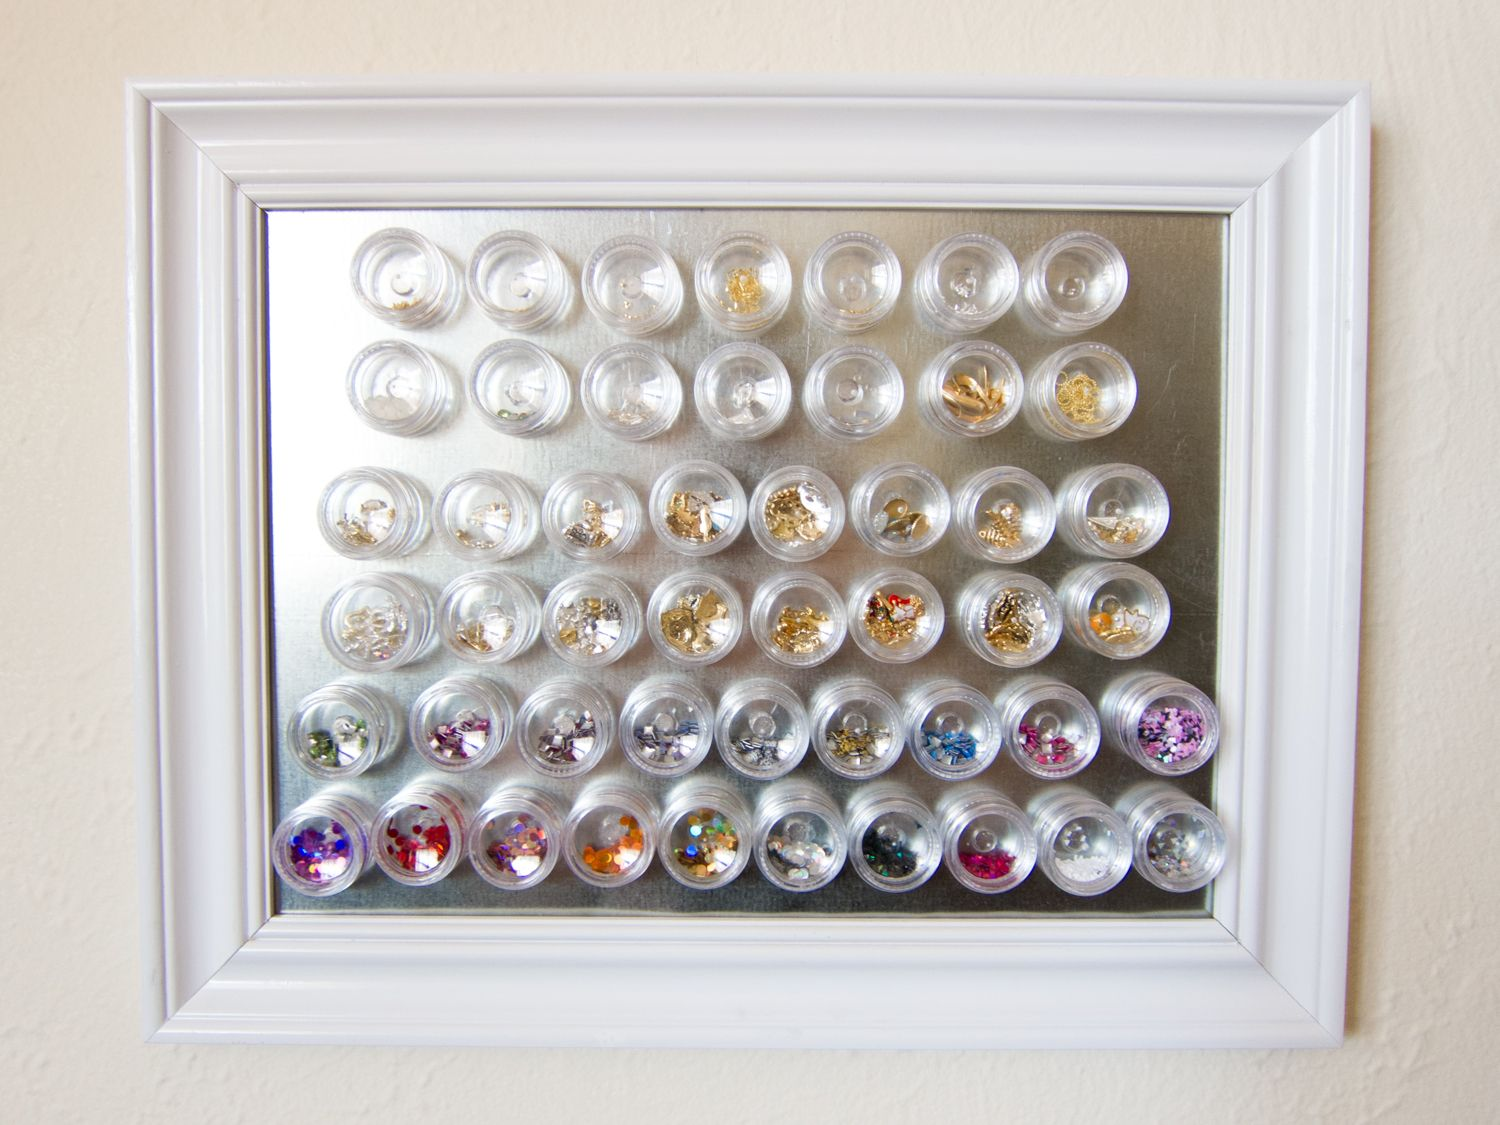 DIY Project: Magnetic Nail Art Organizer - Nagel